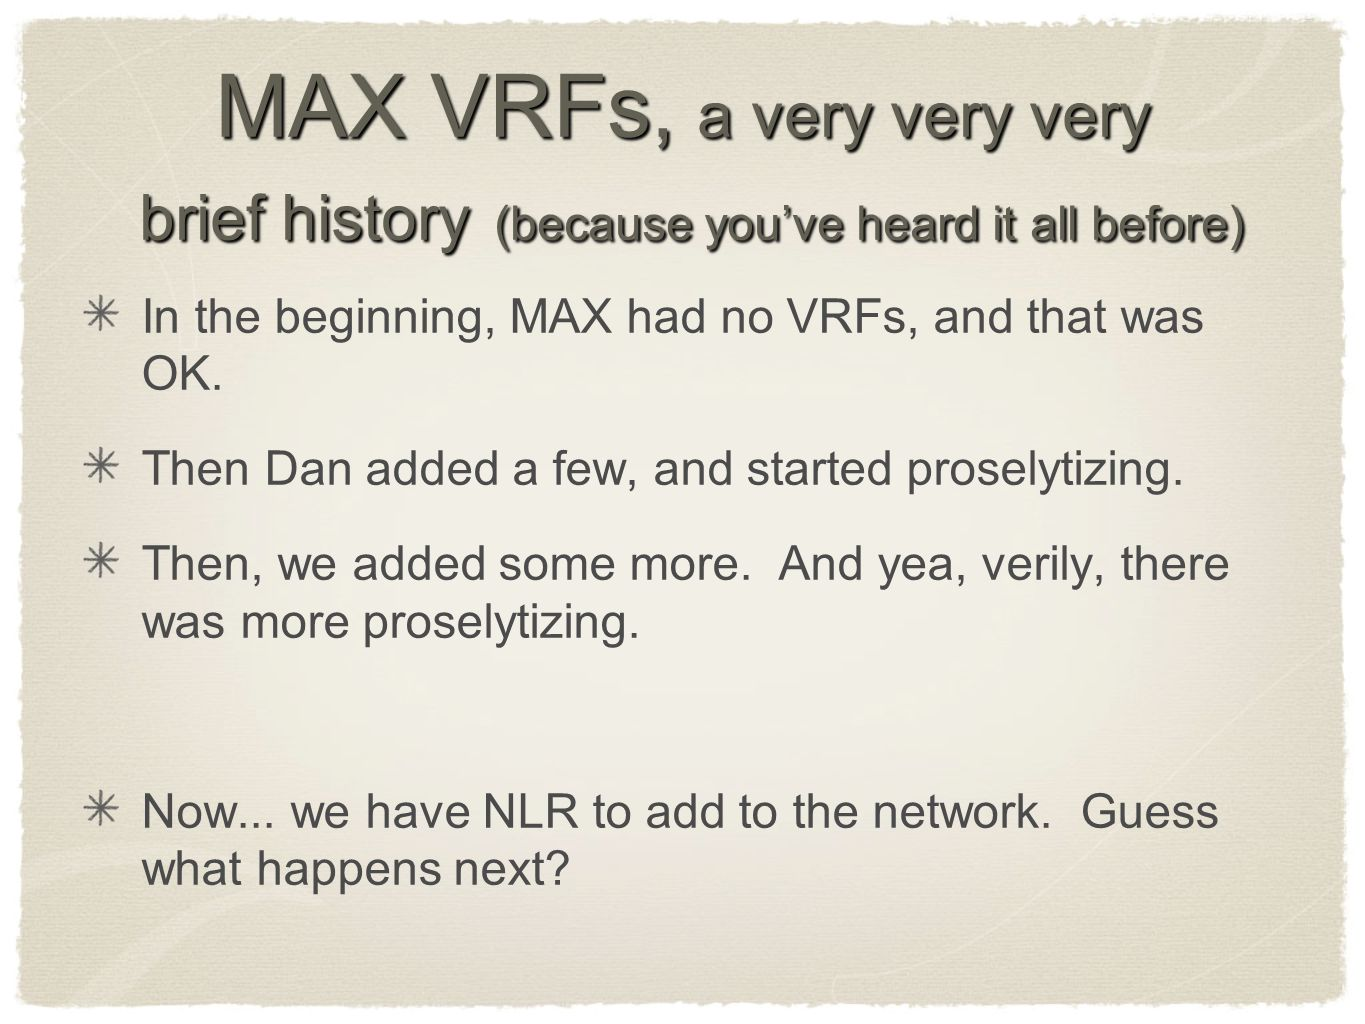 MAX VRFs, a very very very brief history (because you've heard it all before) In the beginning, MAX had no VRFs, and that was OK. Then Dan added a few